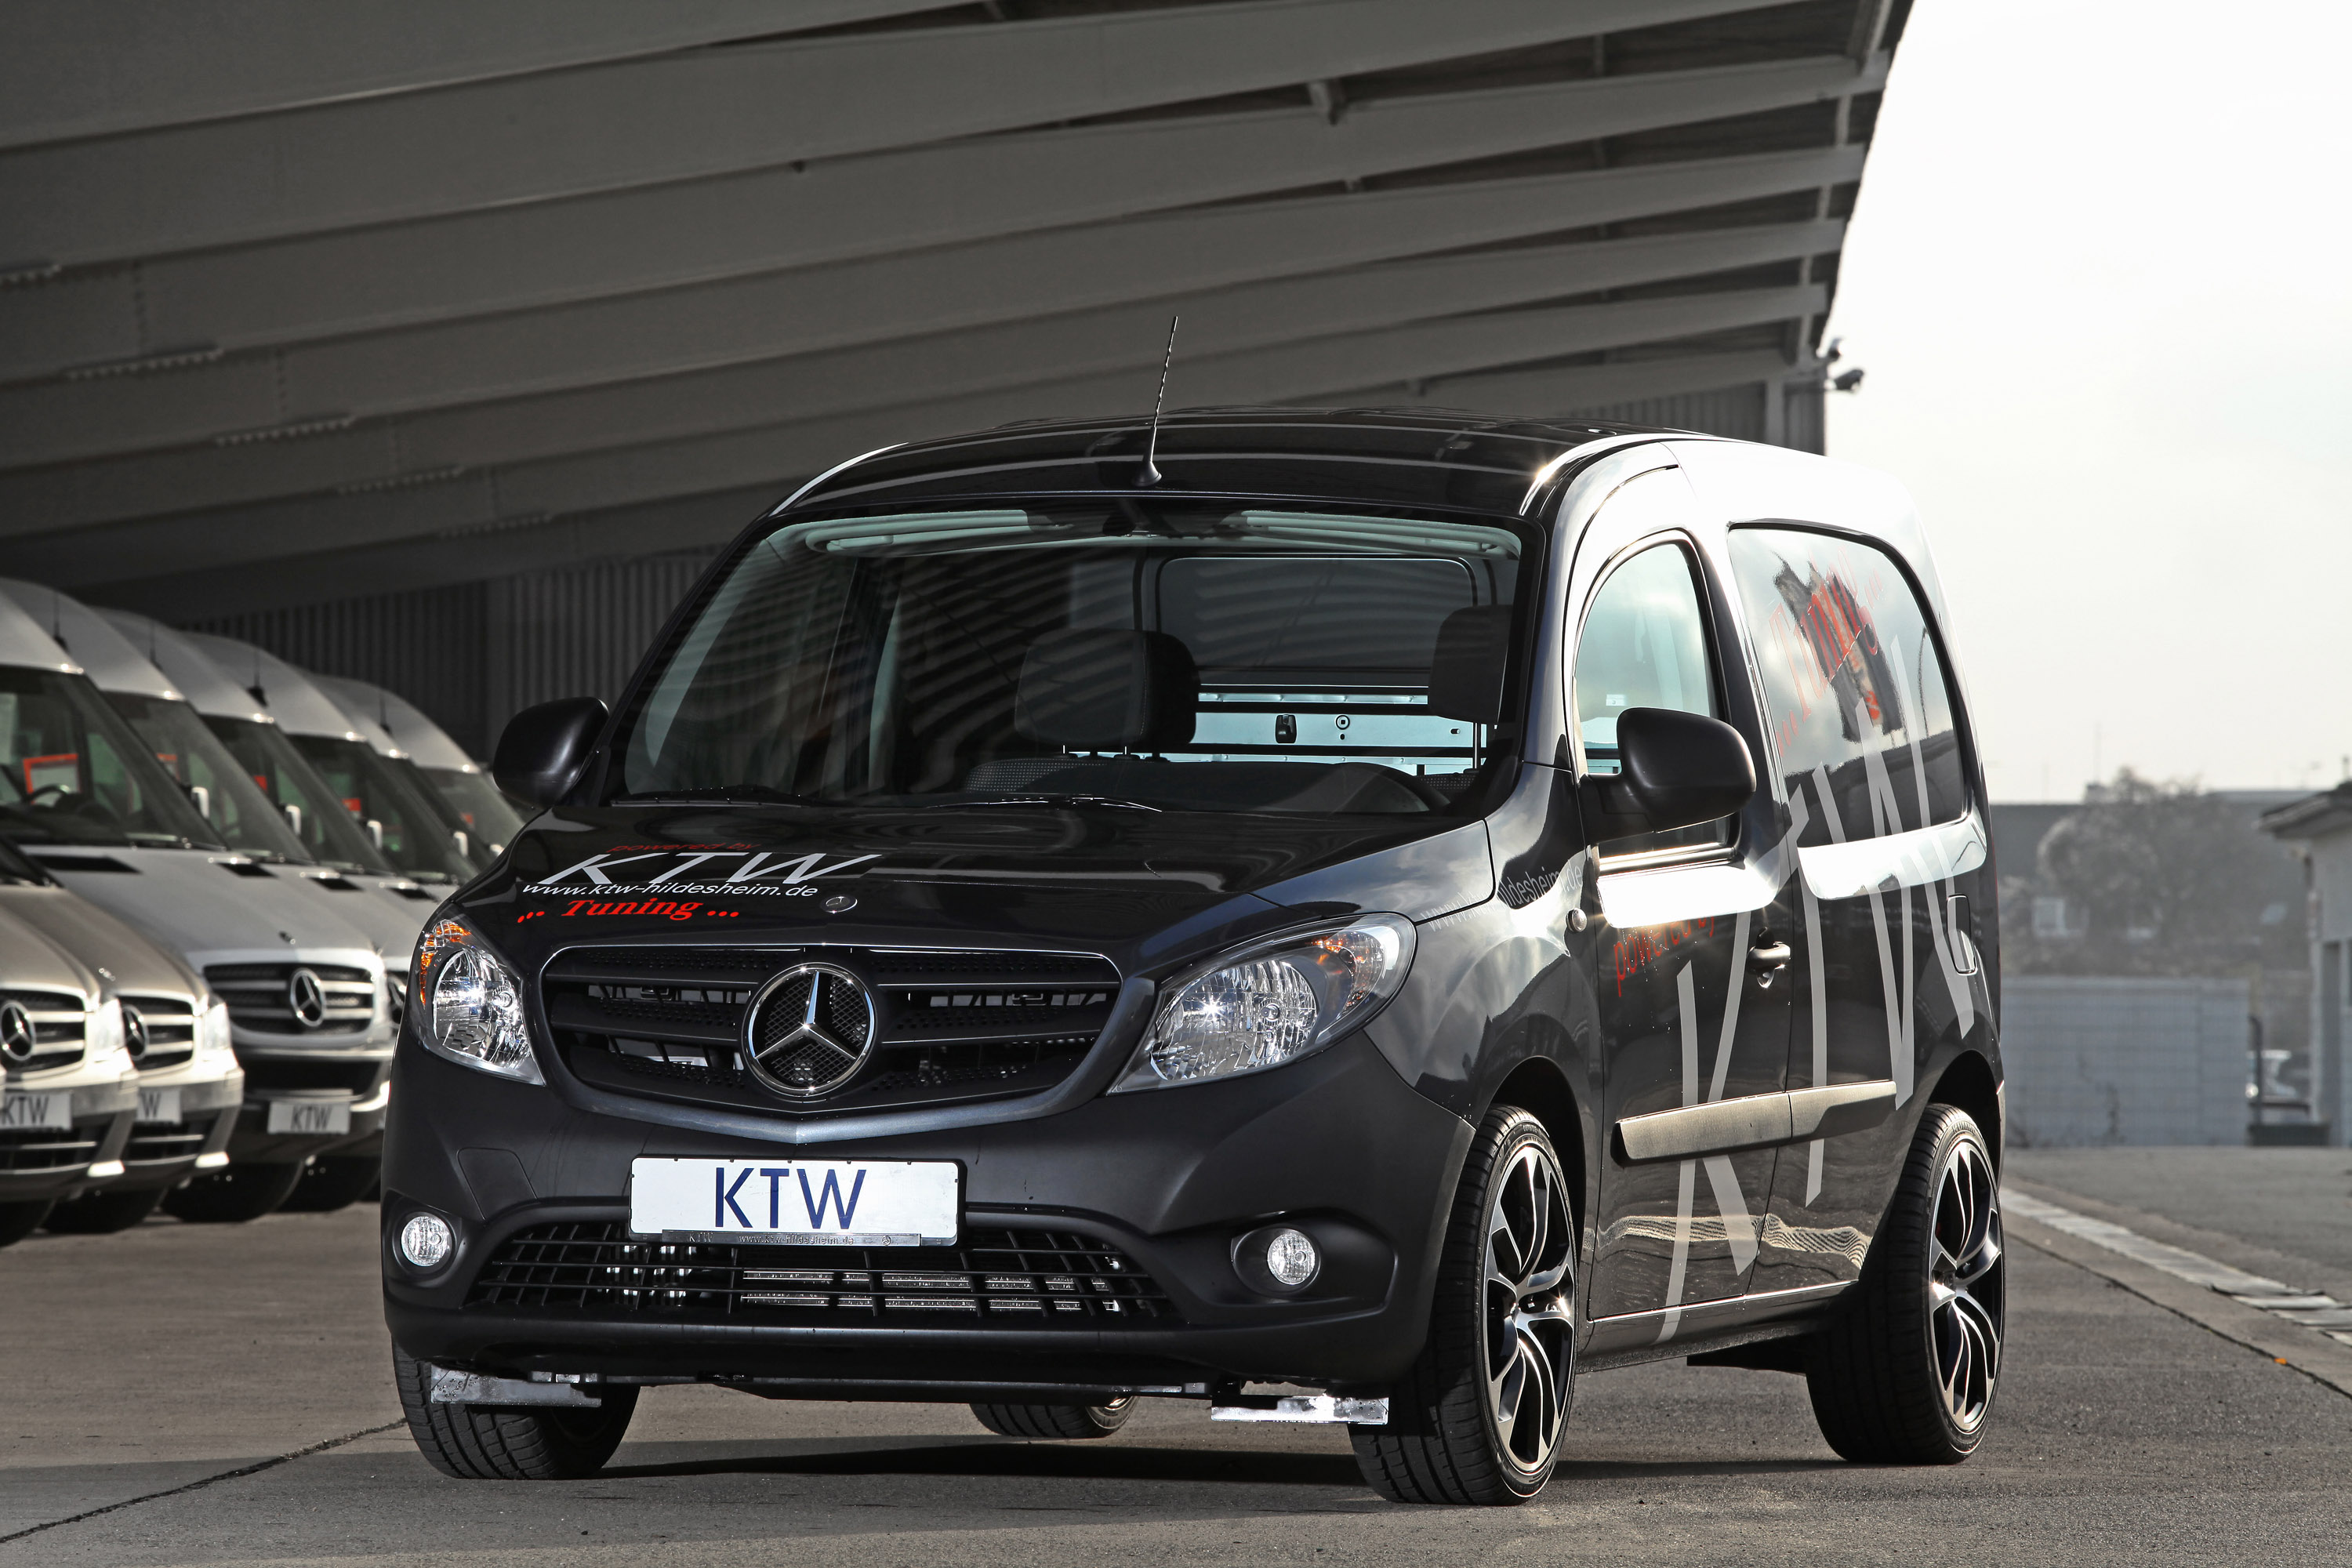 ktw tuning mercedes benz citan. Black Bedroom Furniture Sets. Home Design Ideas